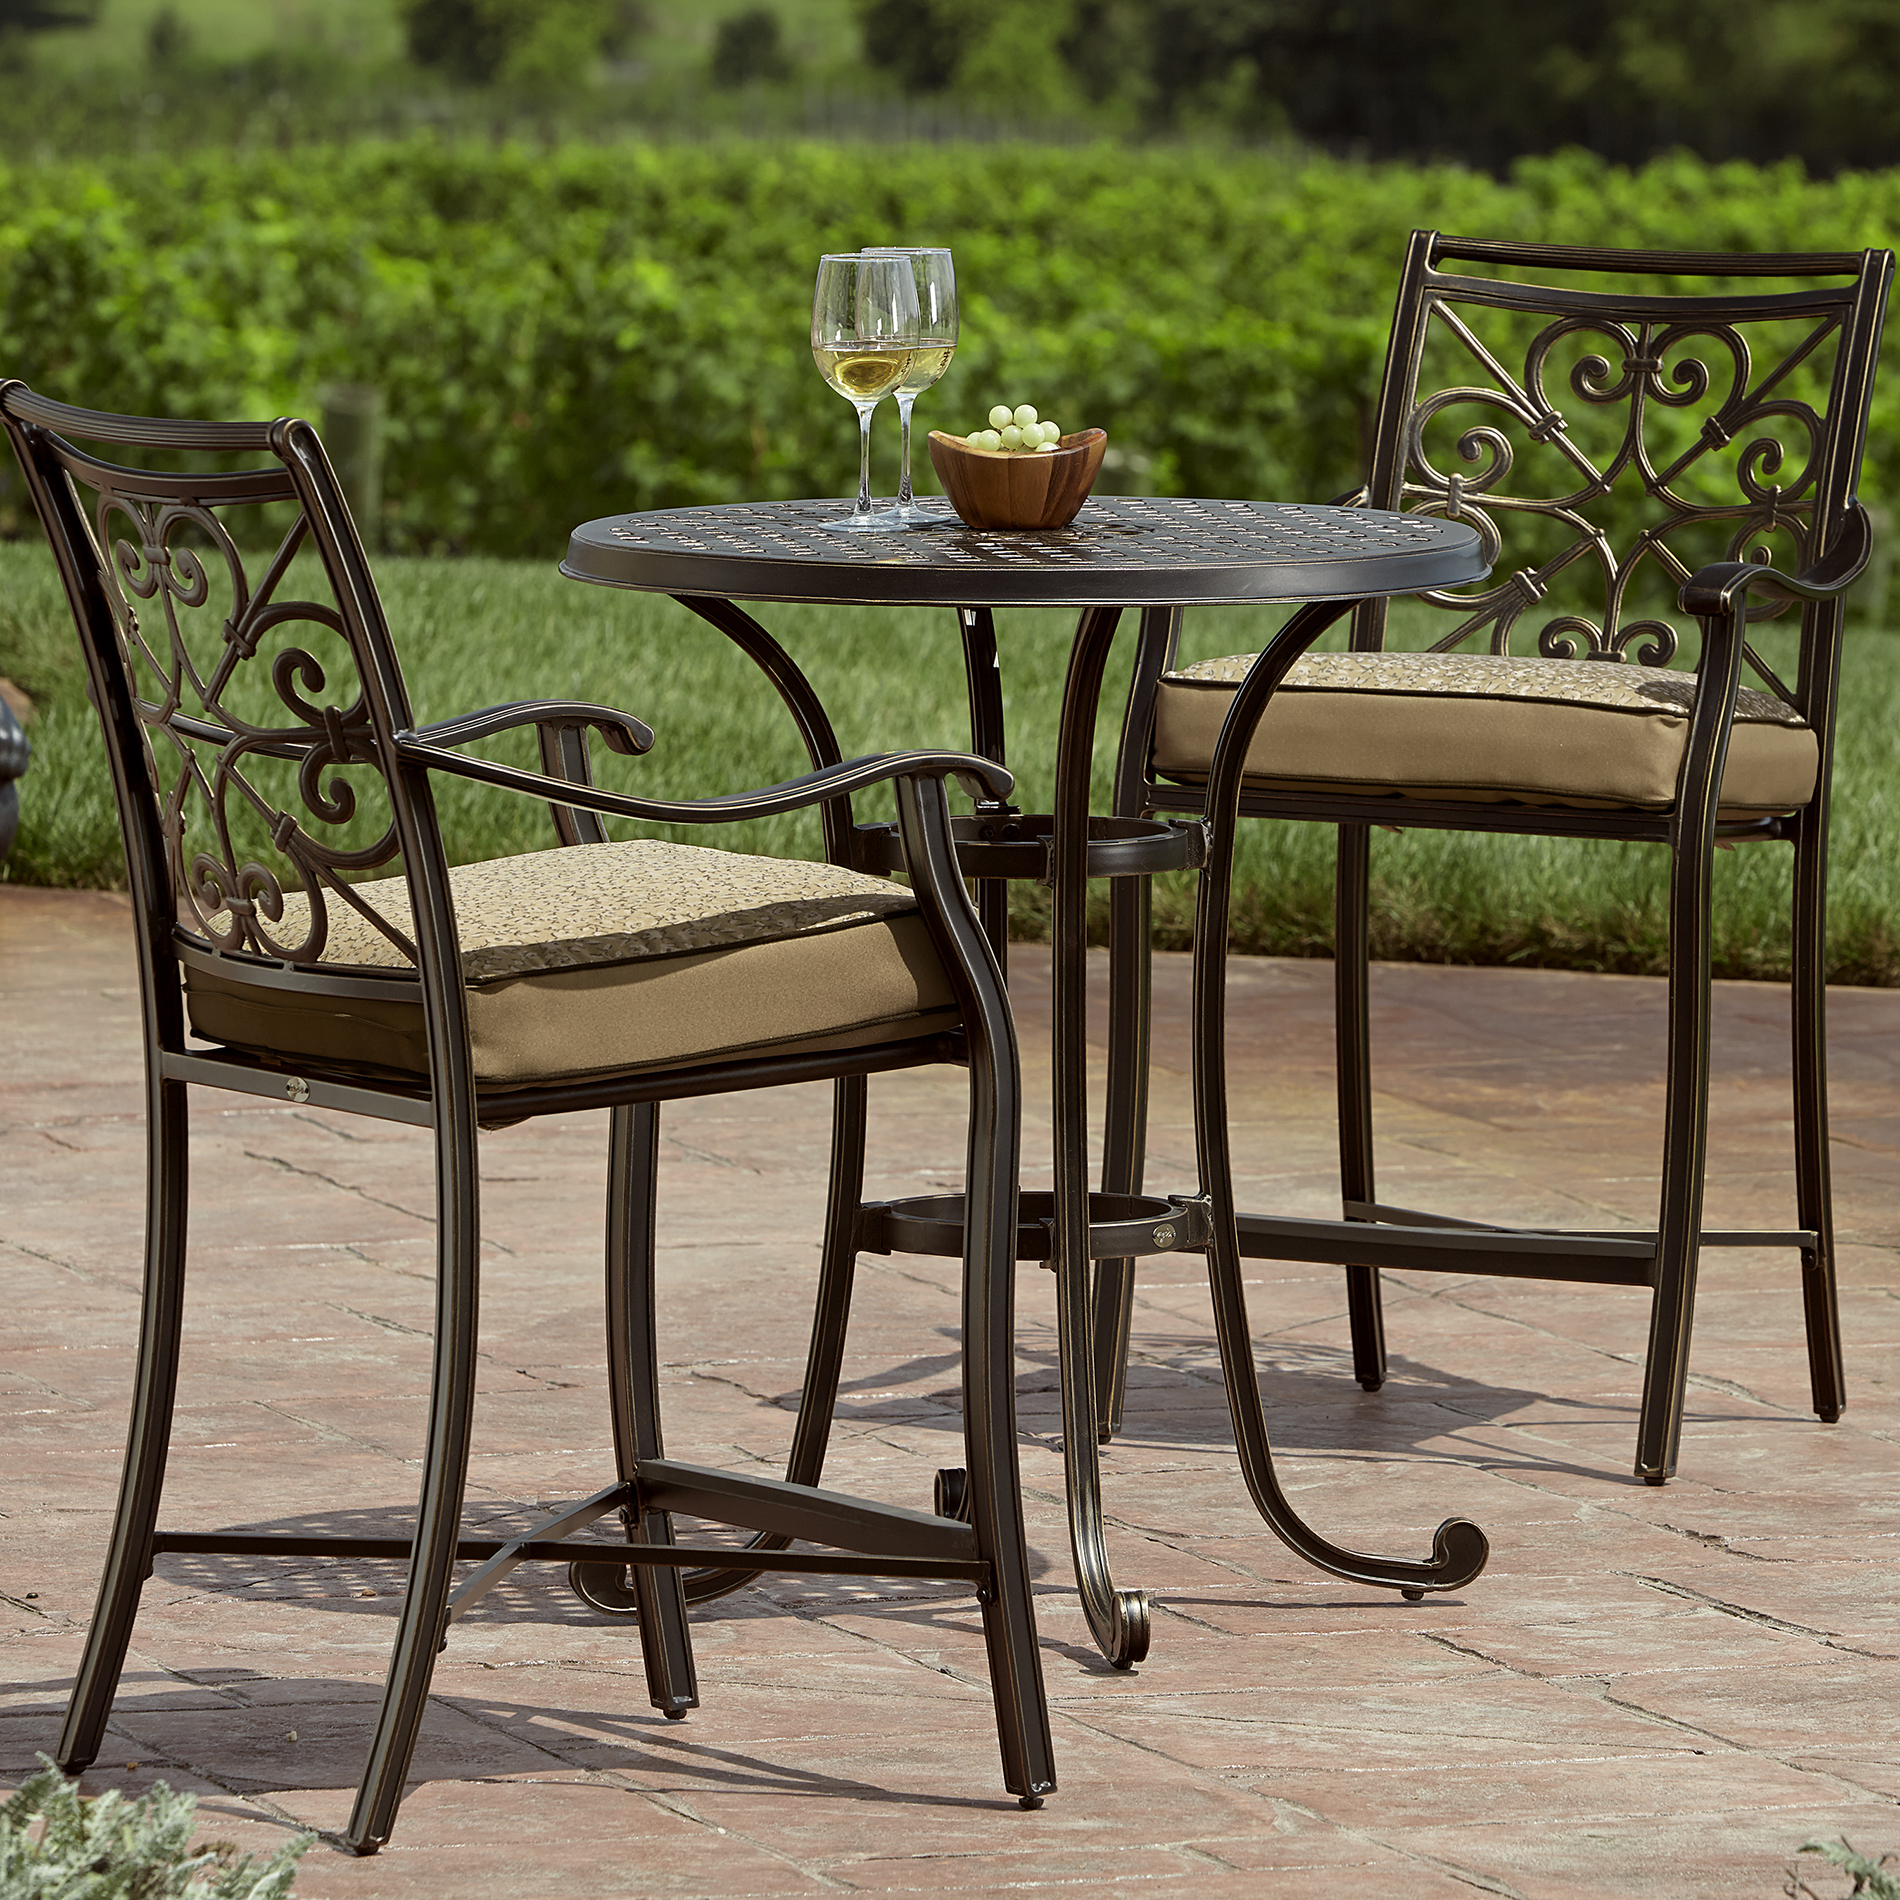 Balcony Height Patio Chairs Balcony Height Bistro Set Make The Most Of Outdoor Living